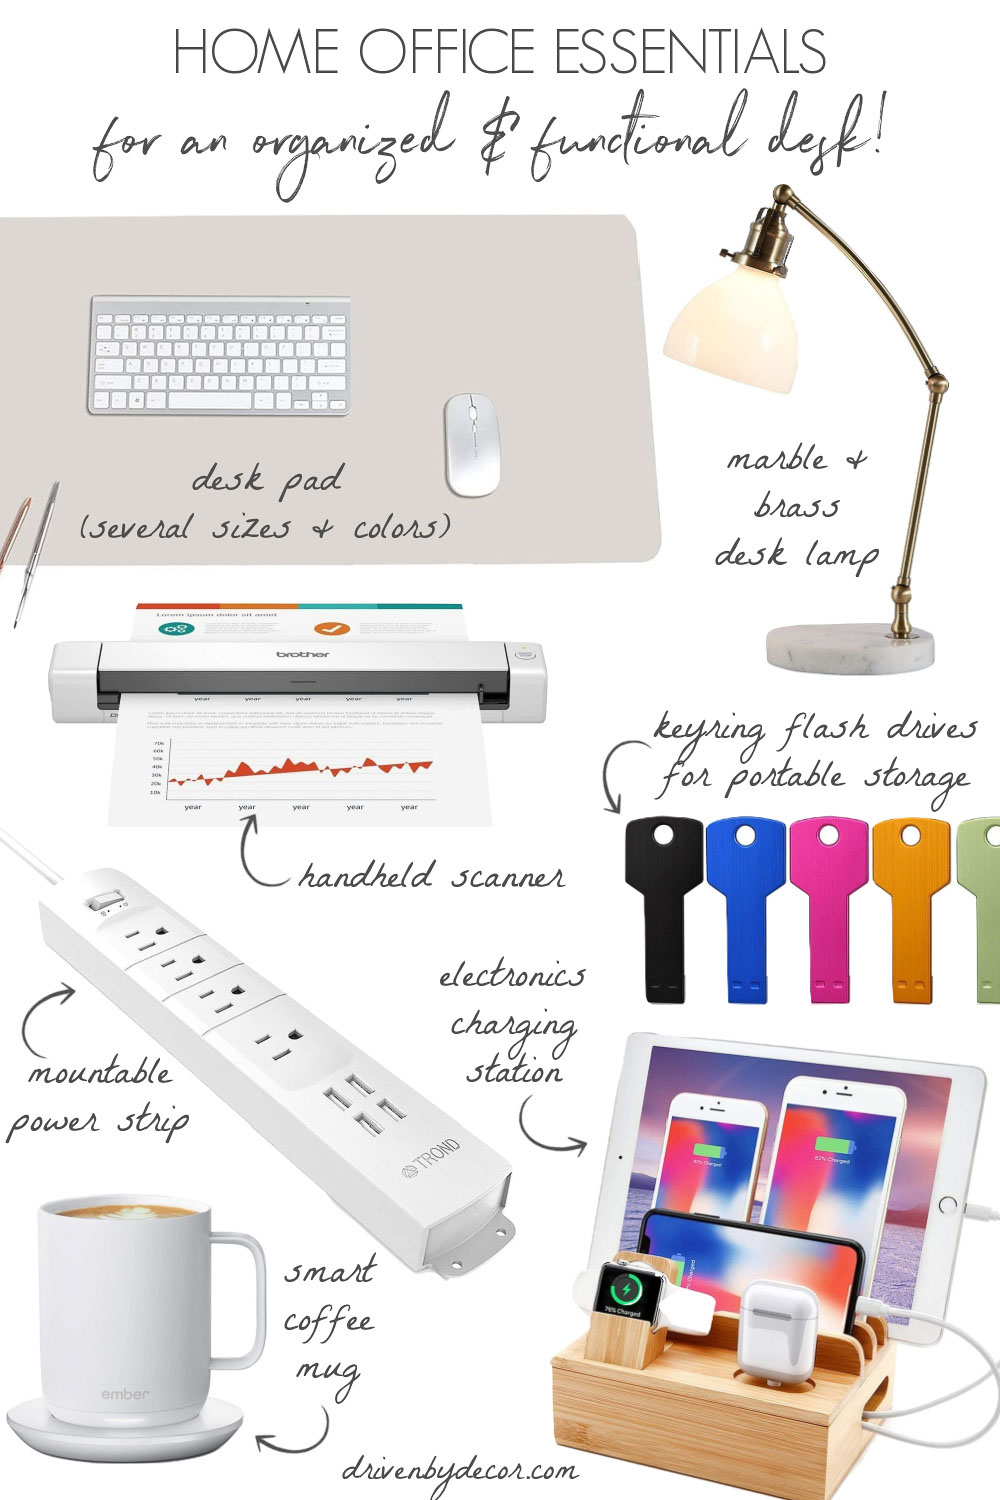 My favorite home office essentials to keep your desk organized and functional!